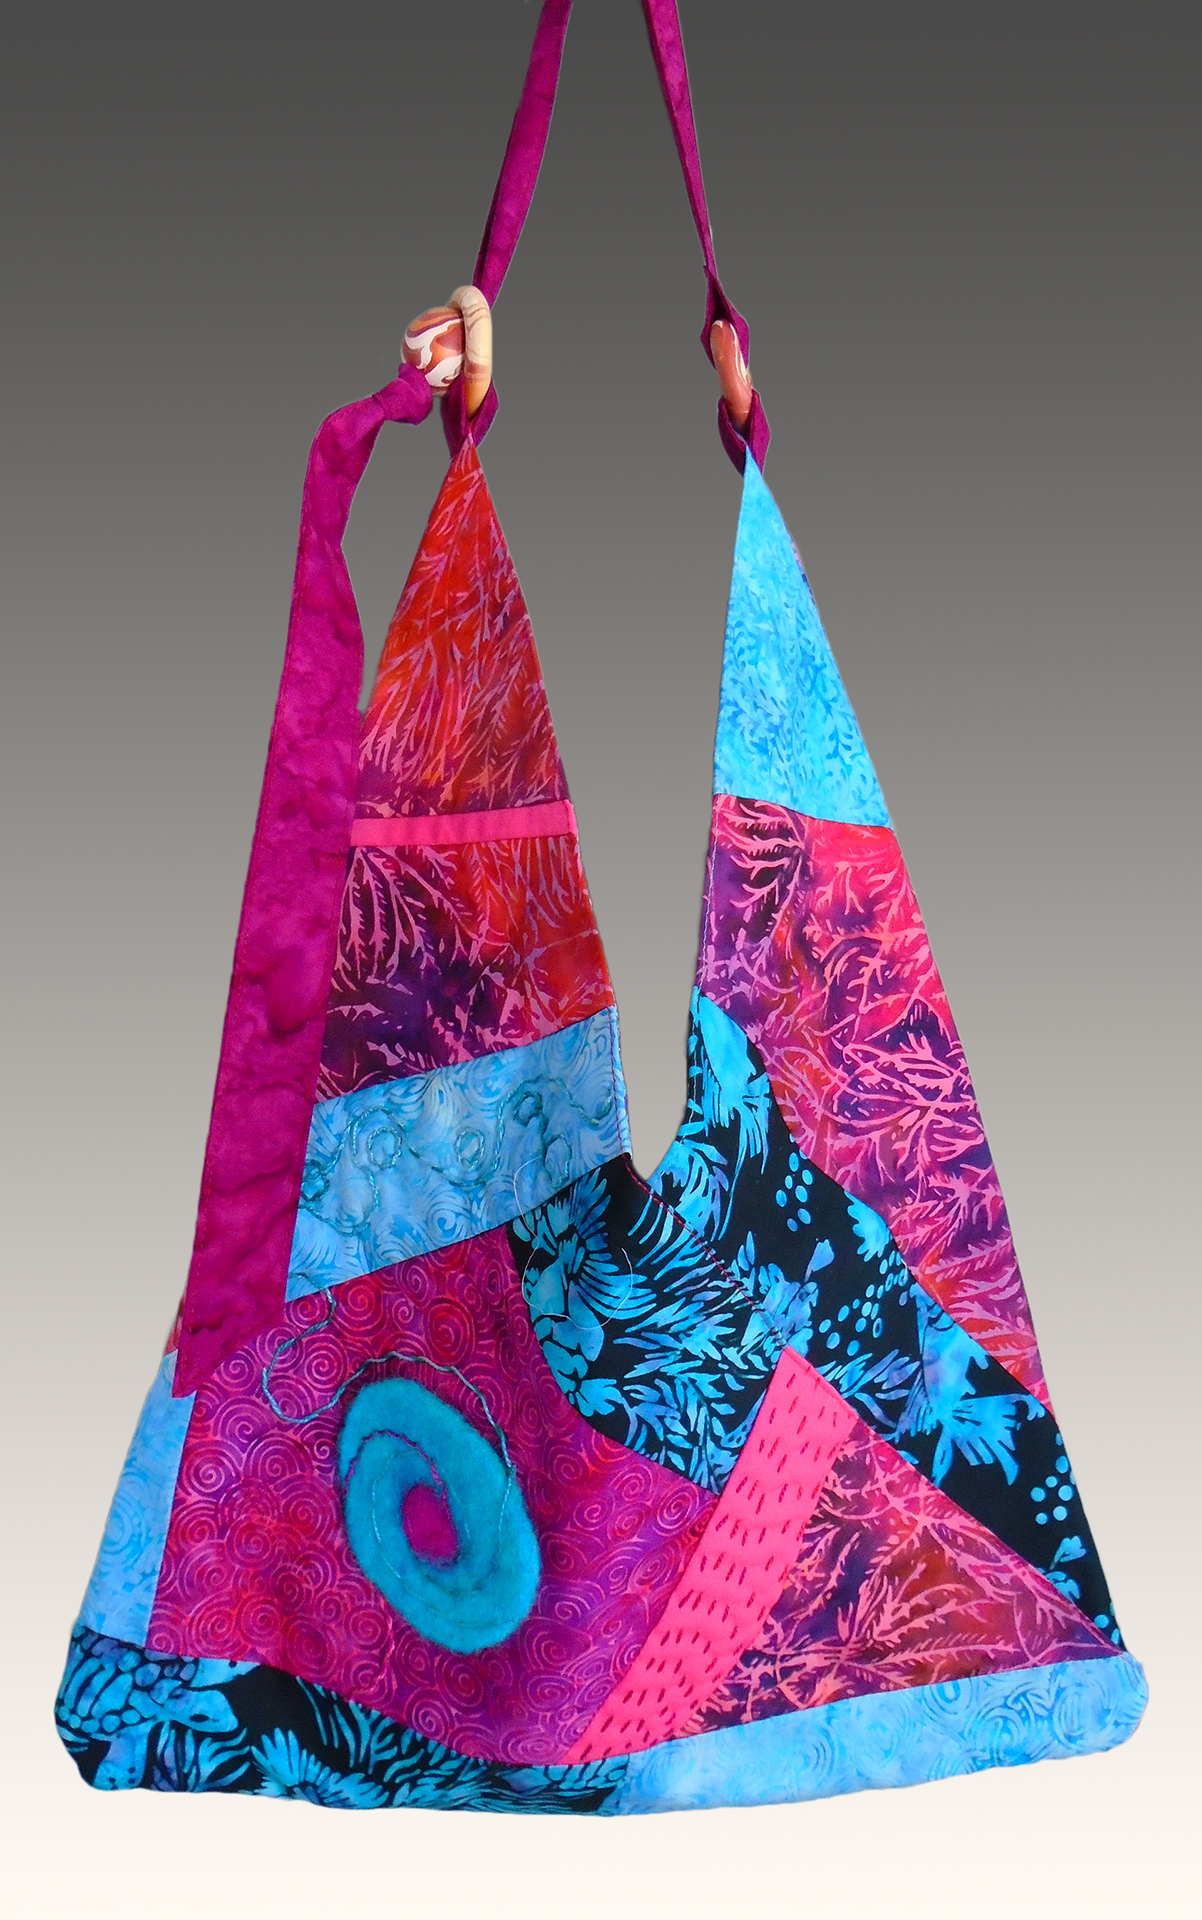 Tote bag with pieced Indonesian batiks, surface embroidery, hand-felted medallion, and hand-marbled wood hardware.